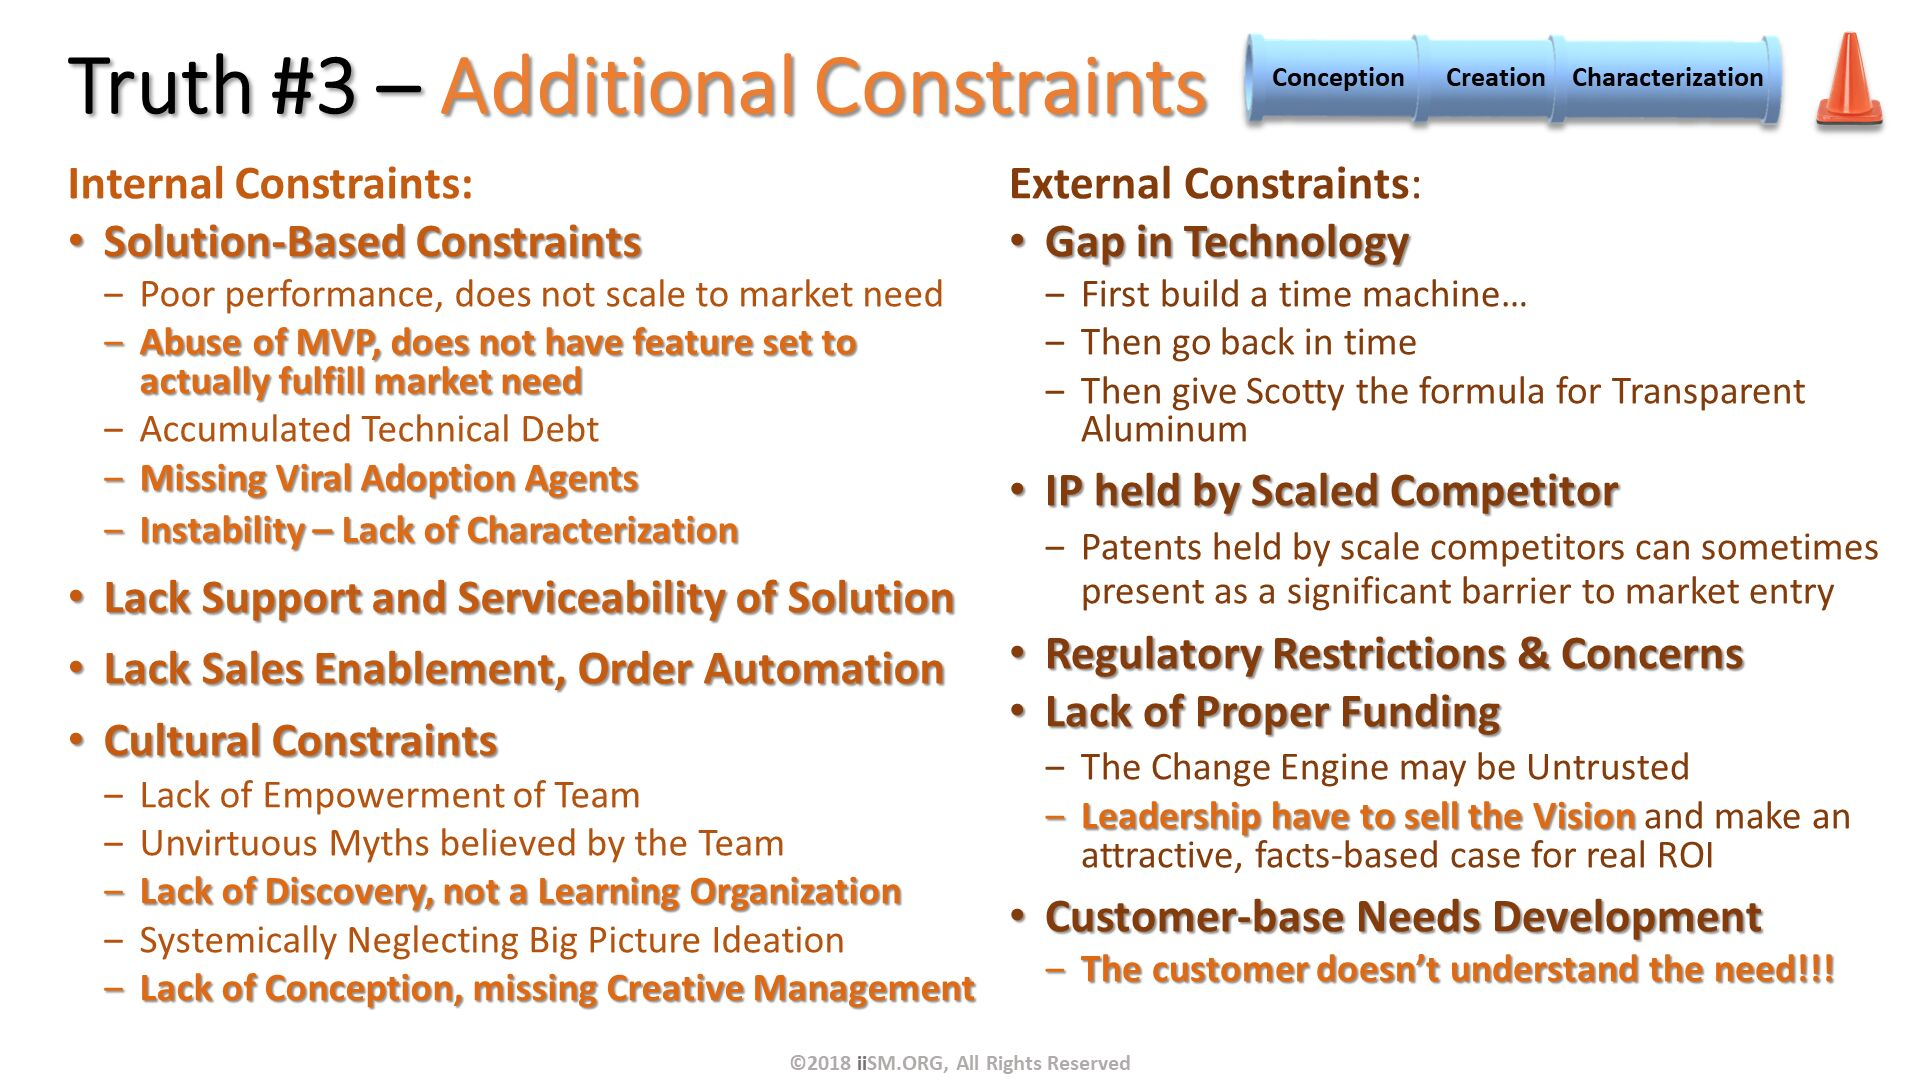 Truth #3 – Additional Constraints . External Constraints: Gap in Technology First build a time machine… Then go back in time Then give Scotty the formula for Transparent Aluminum  IP held by Scaled Competitor Patents held by scale competitors can sometimes present as a significant barrier to market entry Regulatory Restrictions & Concerns Lack of Proper Funding The Change Engine may be Untrusted Leadership have to sell the Vision and make an attractive, facts-based case for real ROI Customer-base Needs Development The customer doesn't understand the need!!!  . Internal Constraints: Solution-Based Constraints Poor performance, does not scale to market need Abuse of MVP, does not have feature set to actually fulfill market need Accumulated Technical Debt Missing Viral Adoption Agents Instability – Lack of Characterization Lack Support and Serviceability of Solution Lack Sales Enablement, Order Automation Cultural Constraints Lack of Empowerment of Team Unvirtuous Myths believed by the Team Lack of Discovery, not a Learning Organization Systemically Neglecting Big Picture Ideation Lack of Conception, missing Creative Management  . ©2018 iiSM.ORG, All Rights Reserved.